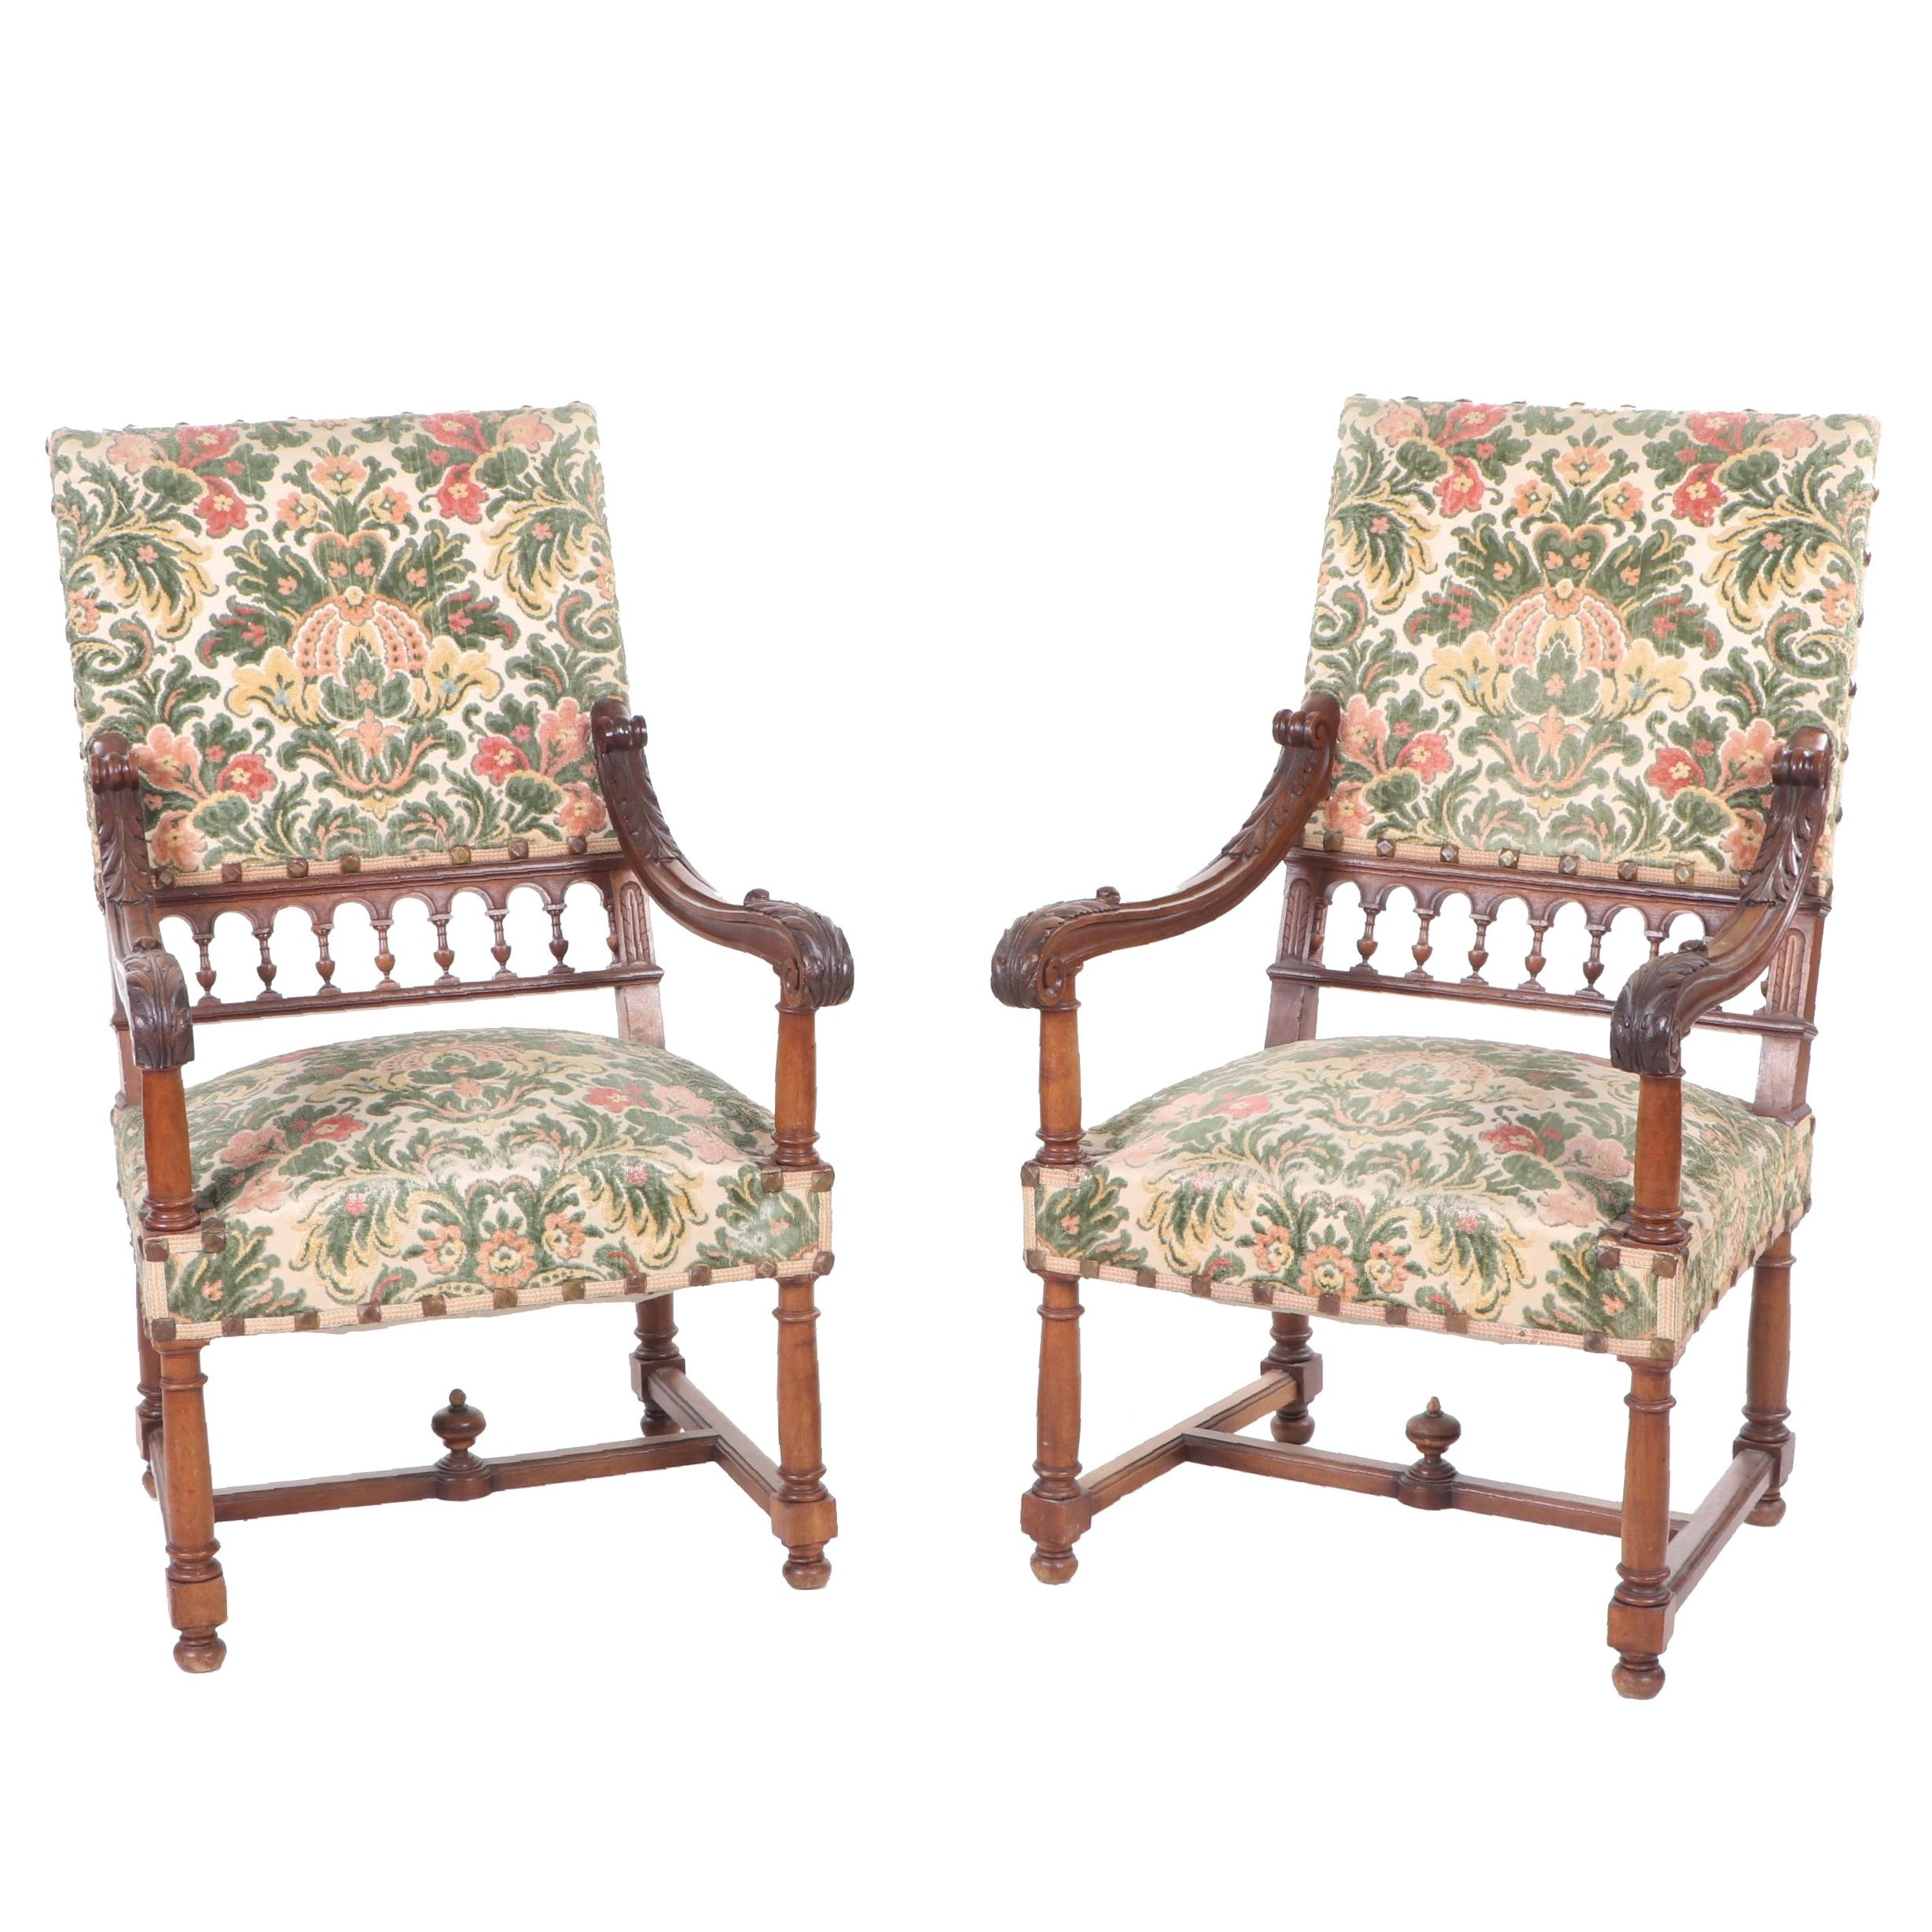 Mahogany Upholstered High-Back Armchairs, Mid to Late 19th Century, Pair